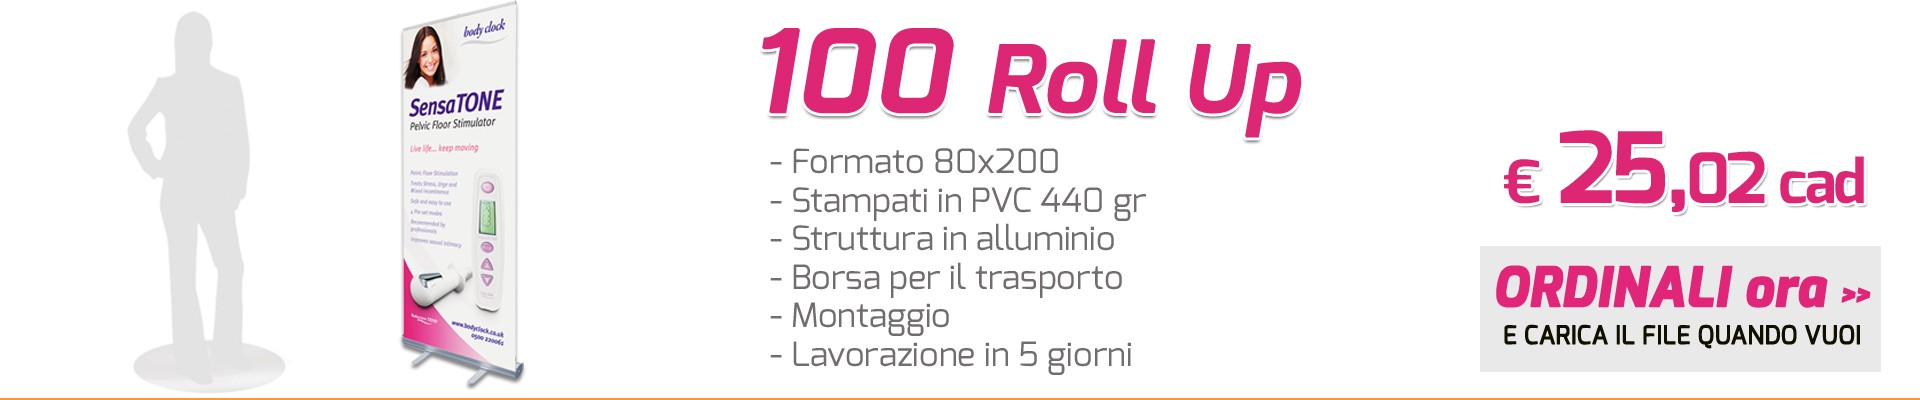 100 Roll Up 80x200 cm a soli 25,02 € cad